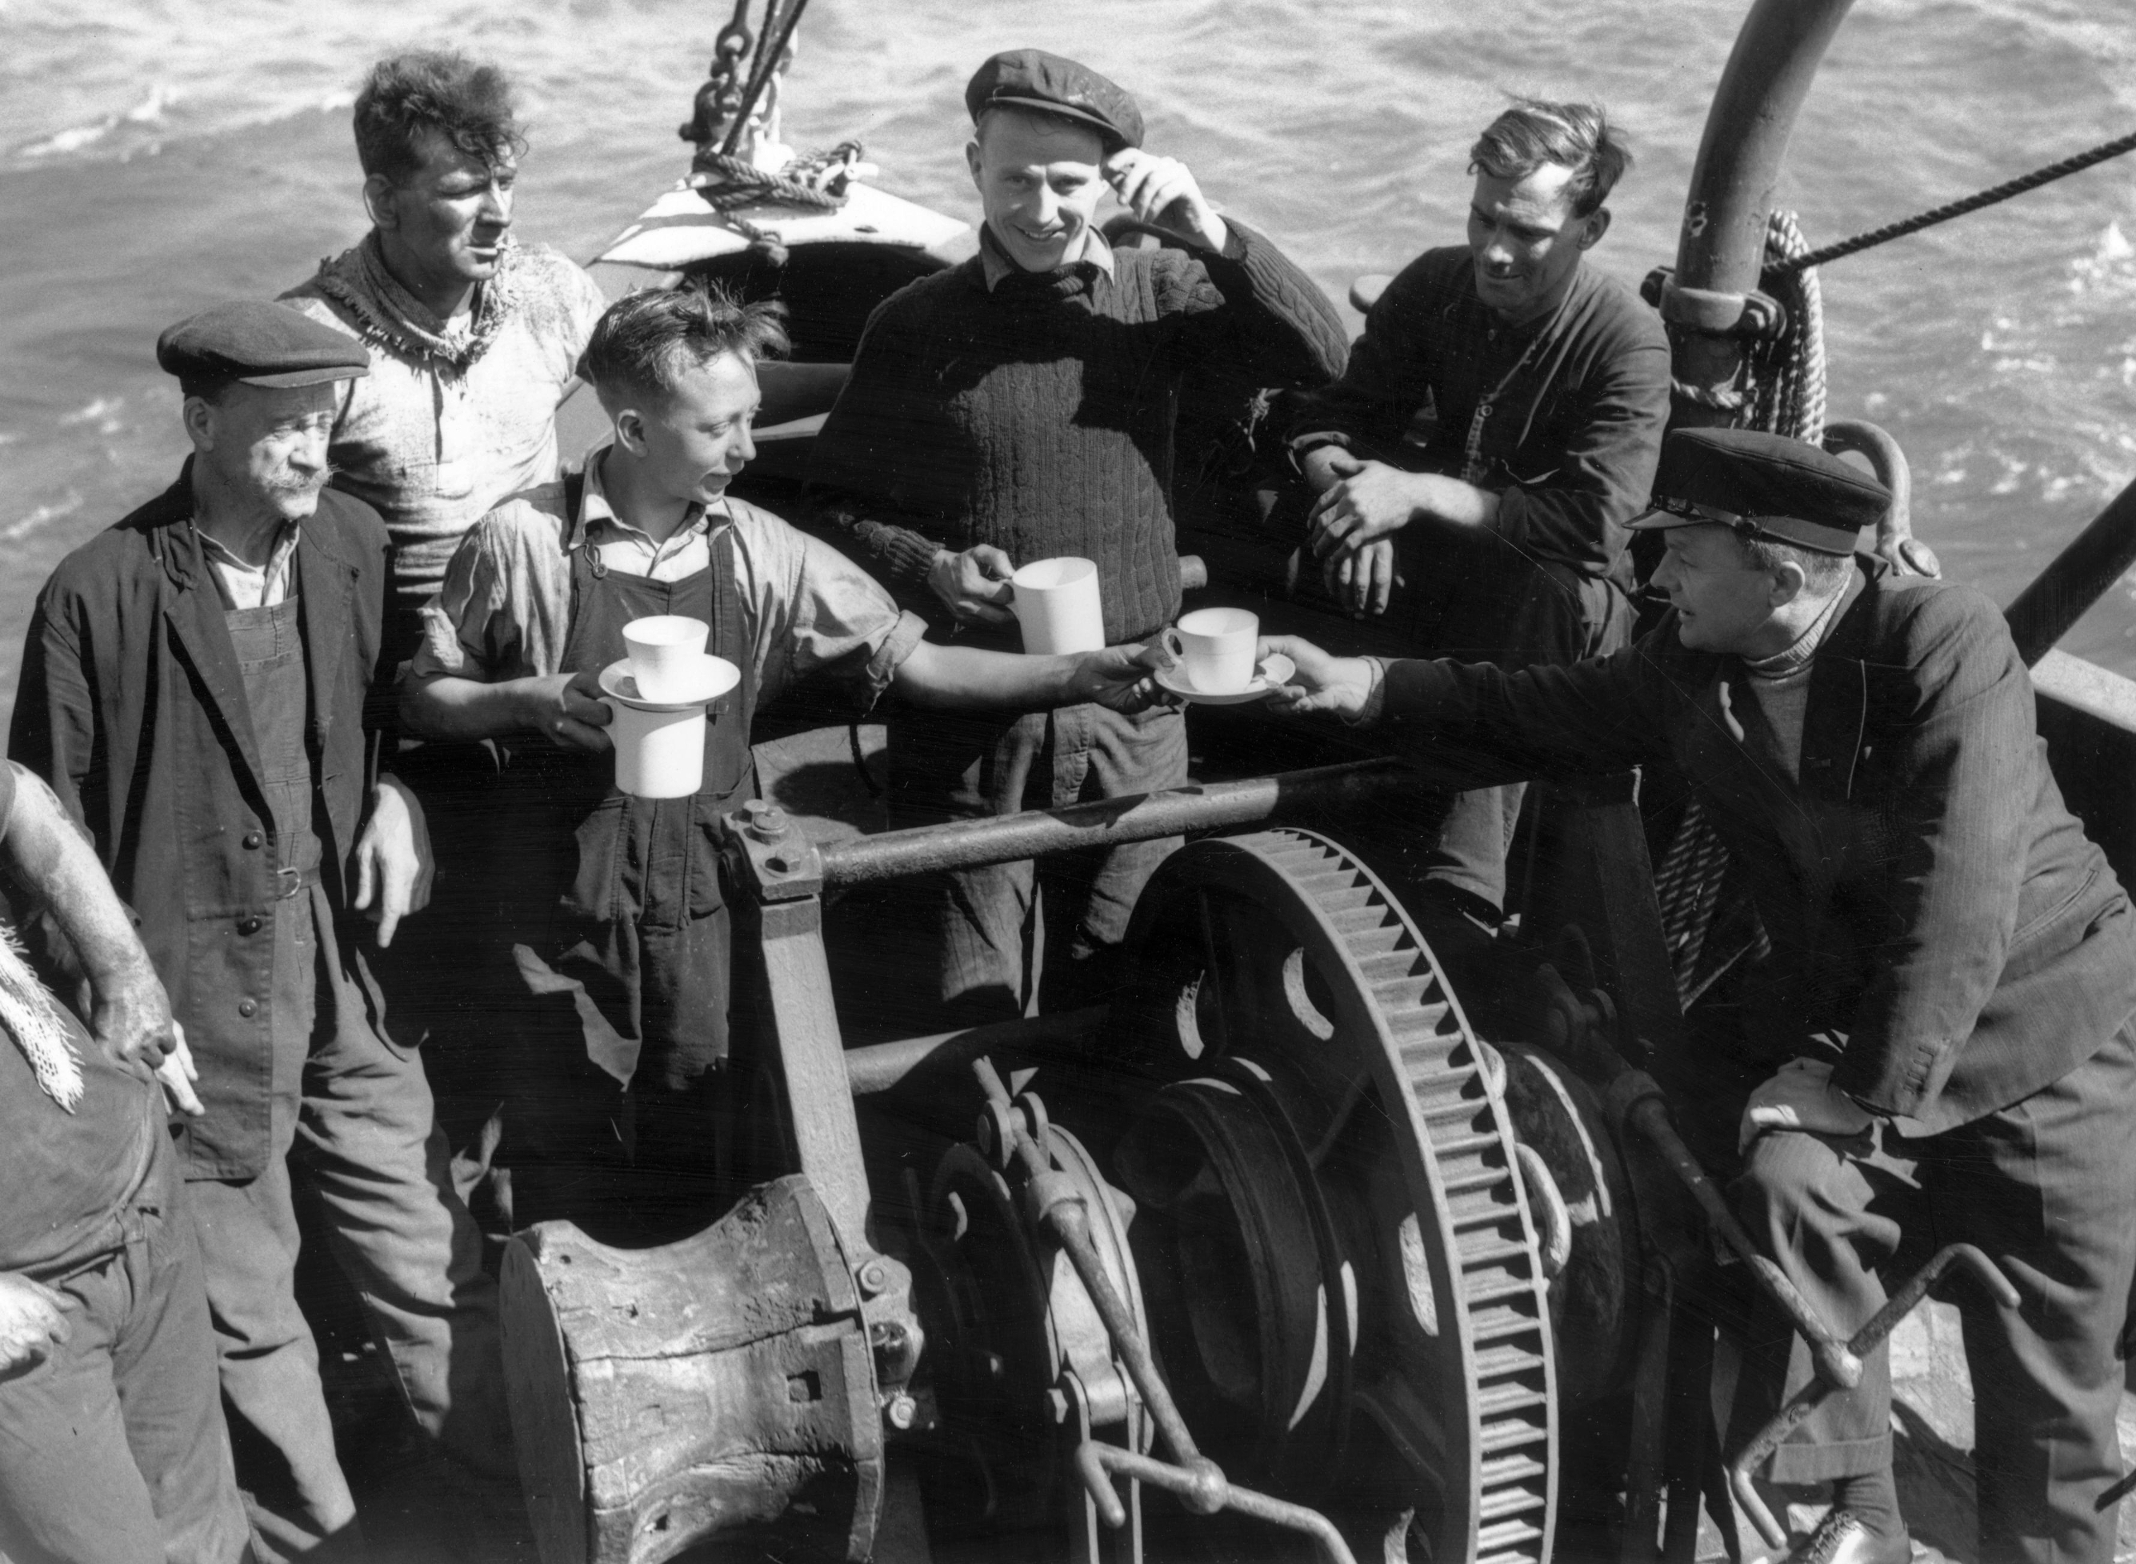 5th June 1940: The crew of the London based tug 'Sunvill' one of the many small craft which took part in the evacuation of British and allied troops from Dunkirk. (Photo by Fox Photos/Getty Images)